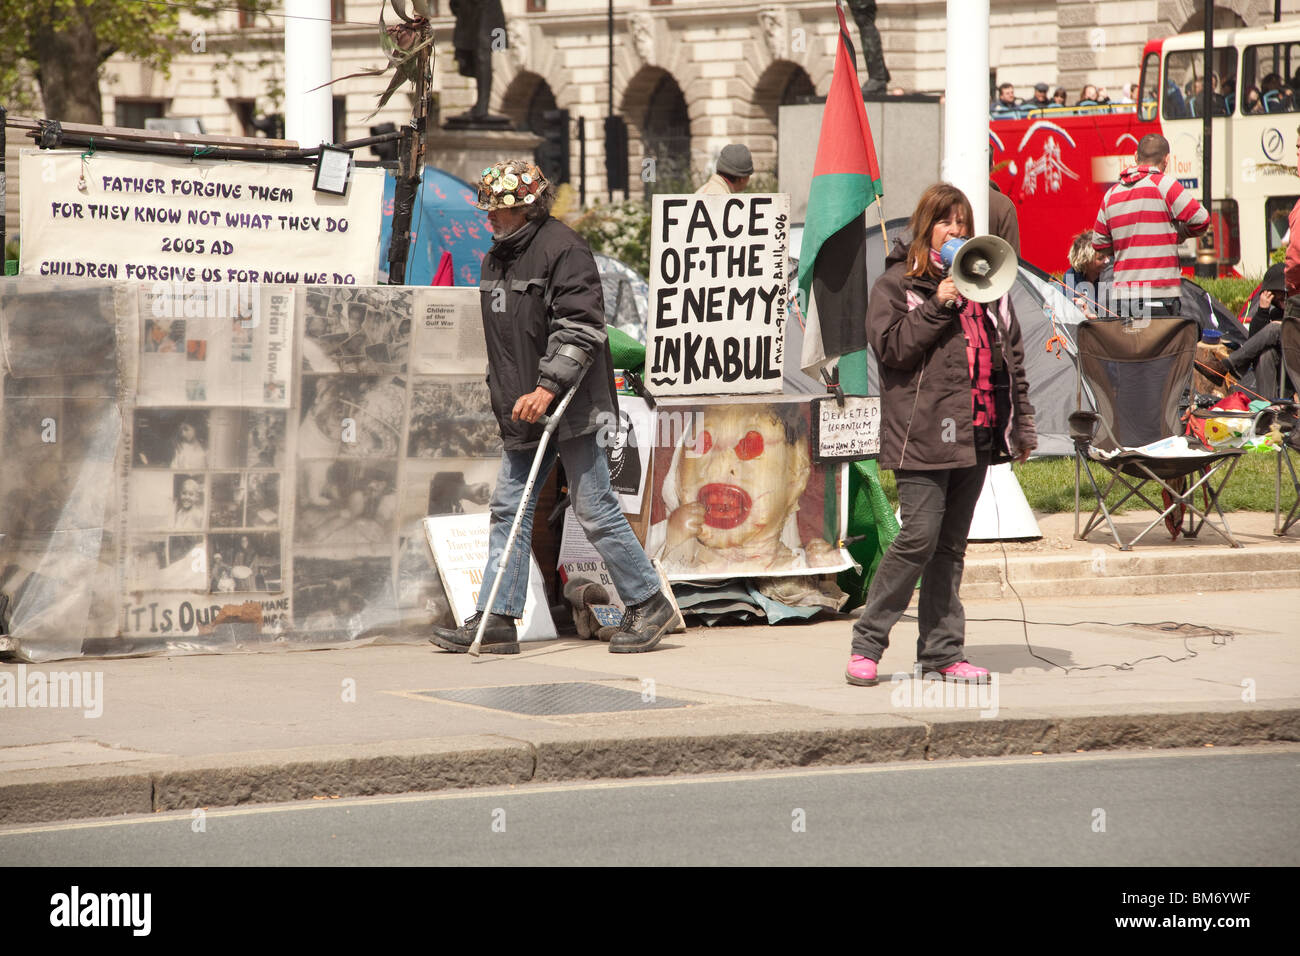 Anti-war protesters and the peace camp, Parliament Square, Westminster, London, England. Stock Photo